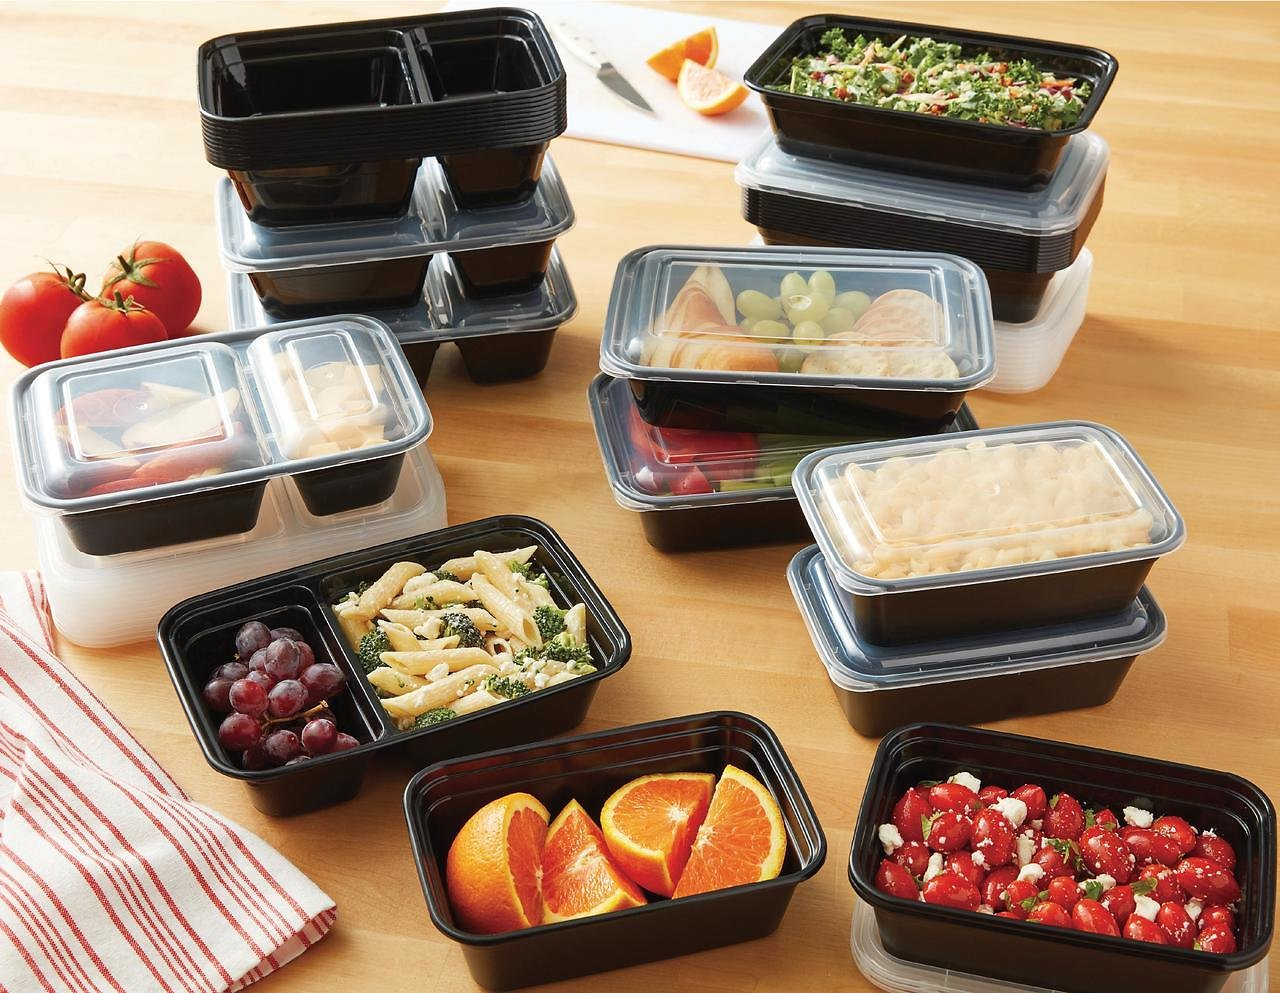 70-Pc Mainstays Meal Prep Set (In-Store)